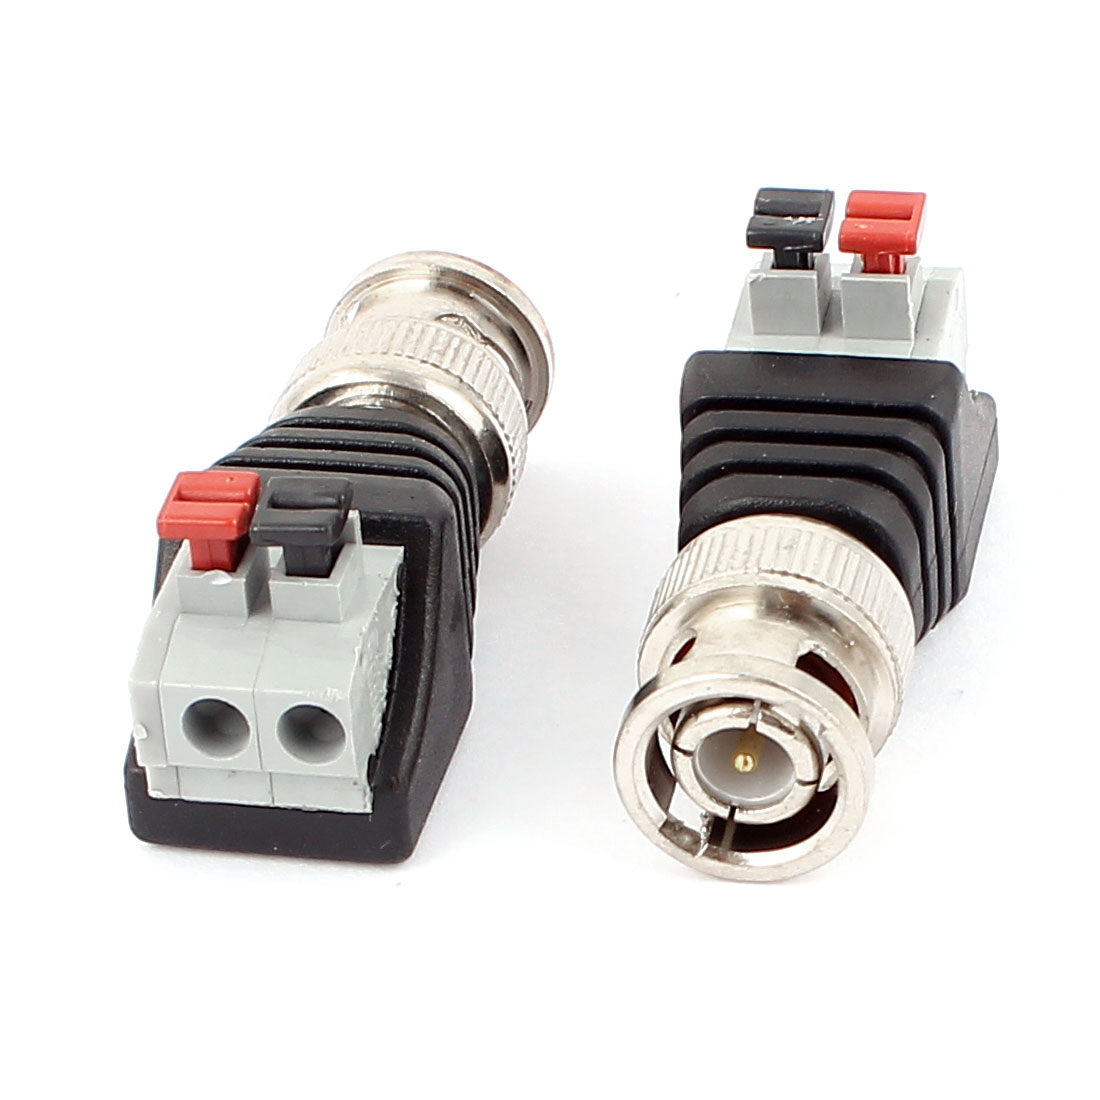 2 Pcs Clip Type Terminal Block Coaxial Cat5 to BNC Female Jack Connector - image 1 of 1